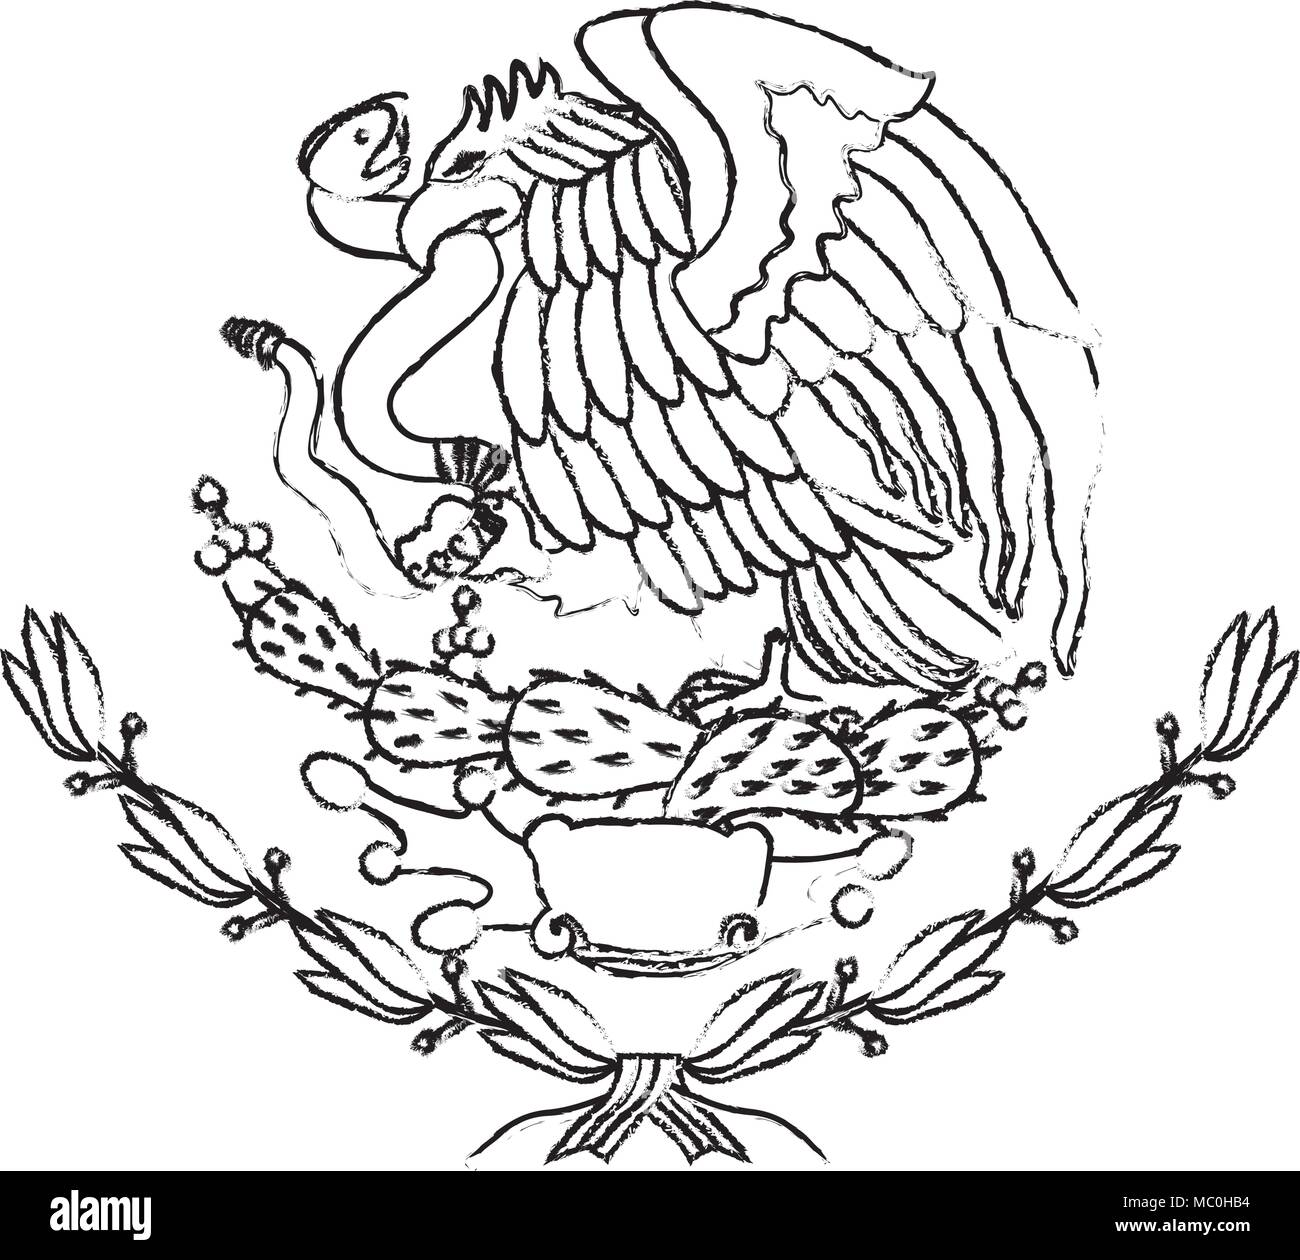 patriotism black and white stock photos images alamy French Revolution Flags K emblem of the mexican flag stock image